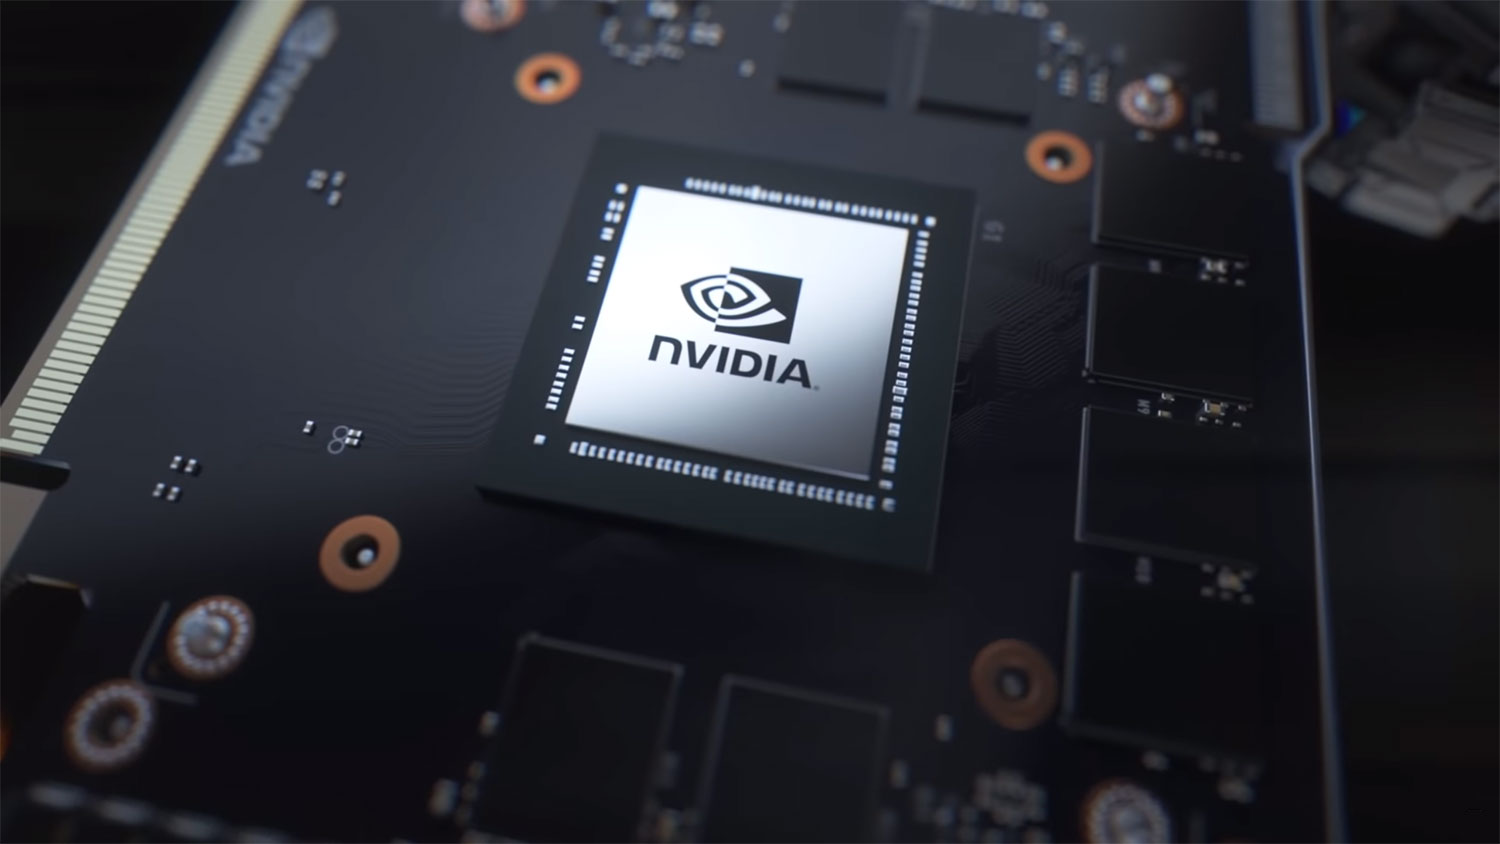 Nvidia RTX 3080 and RTX 3070 GPUs may be leaking into Comet Lake laptops